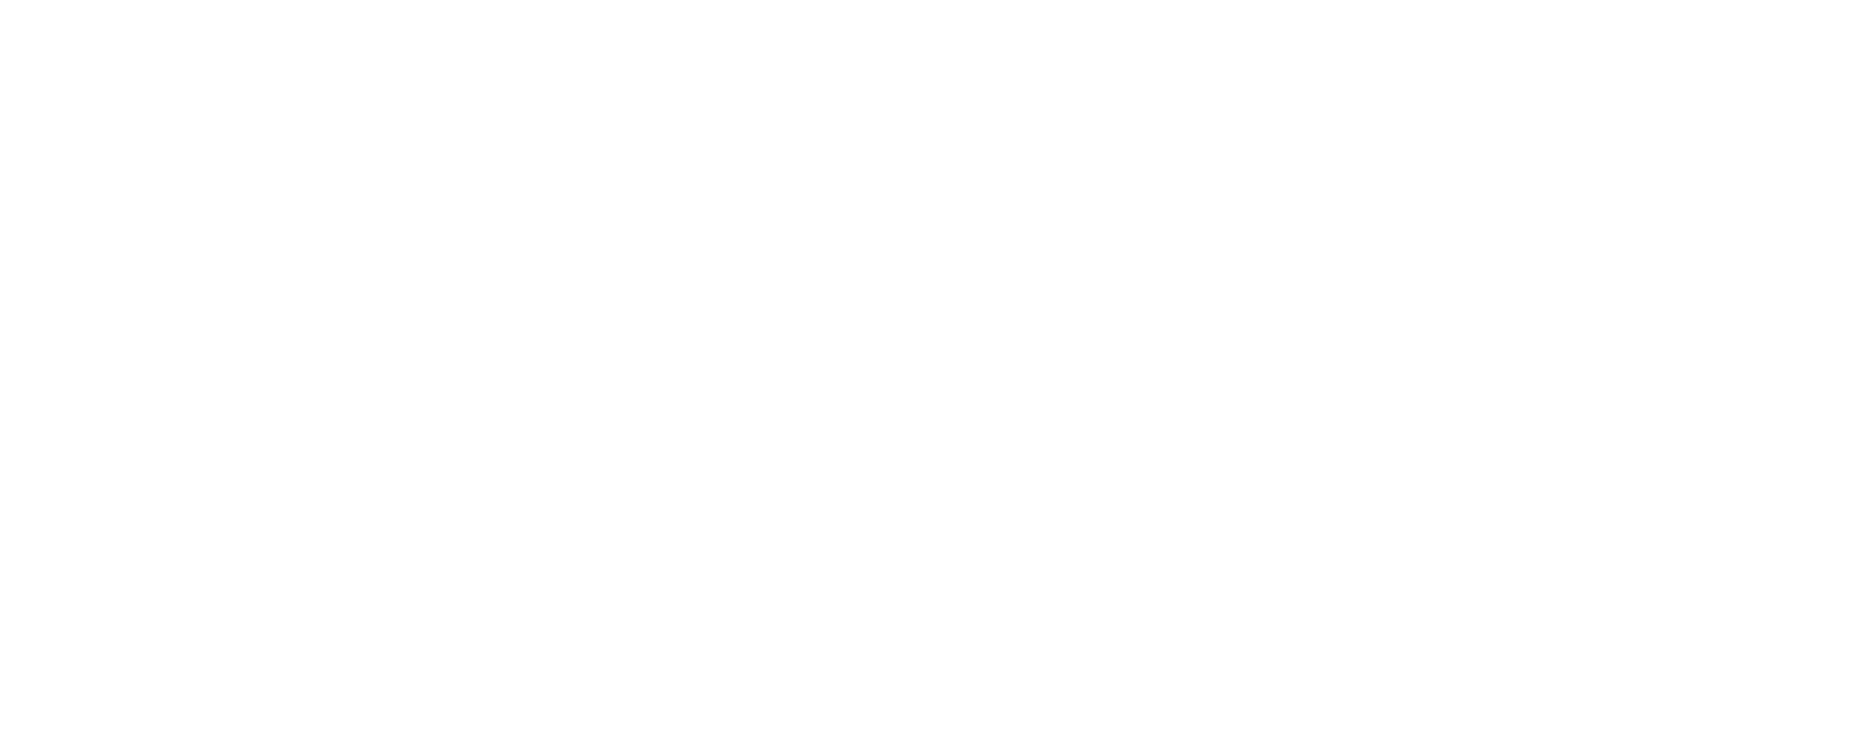 Time out logo png. London contact information journalists